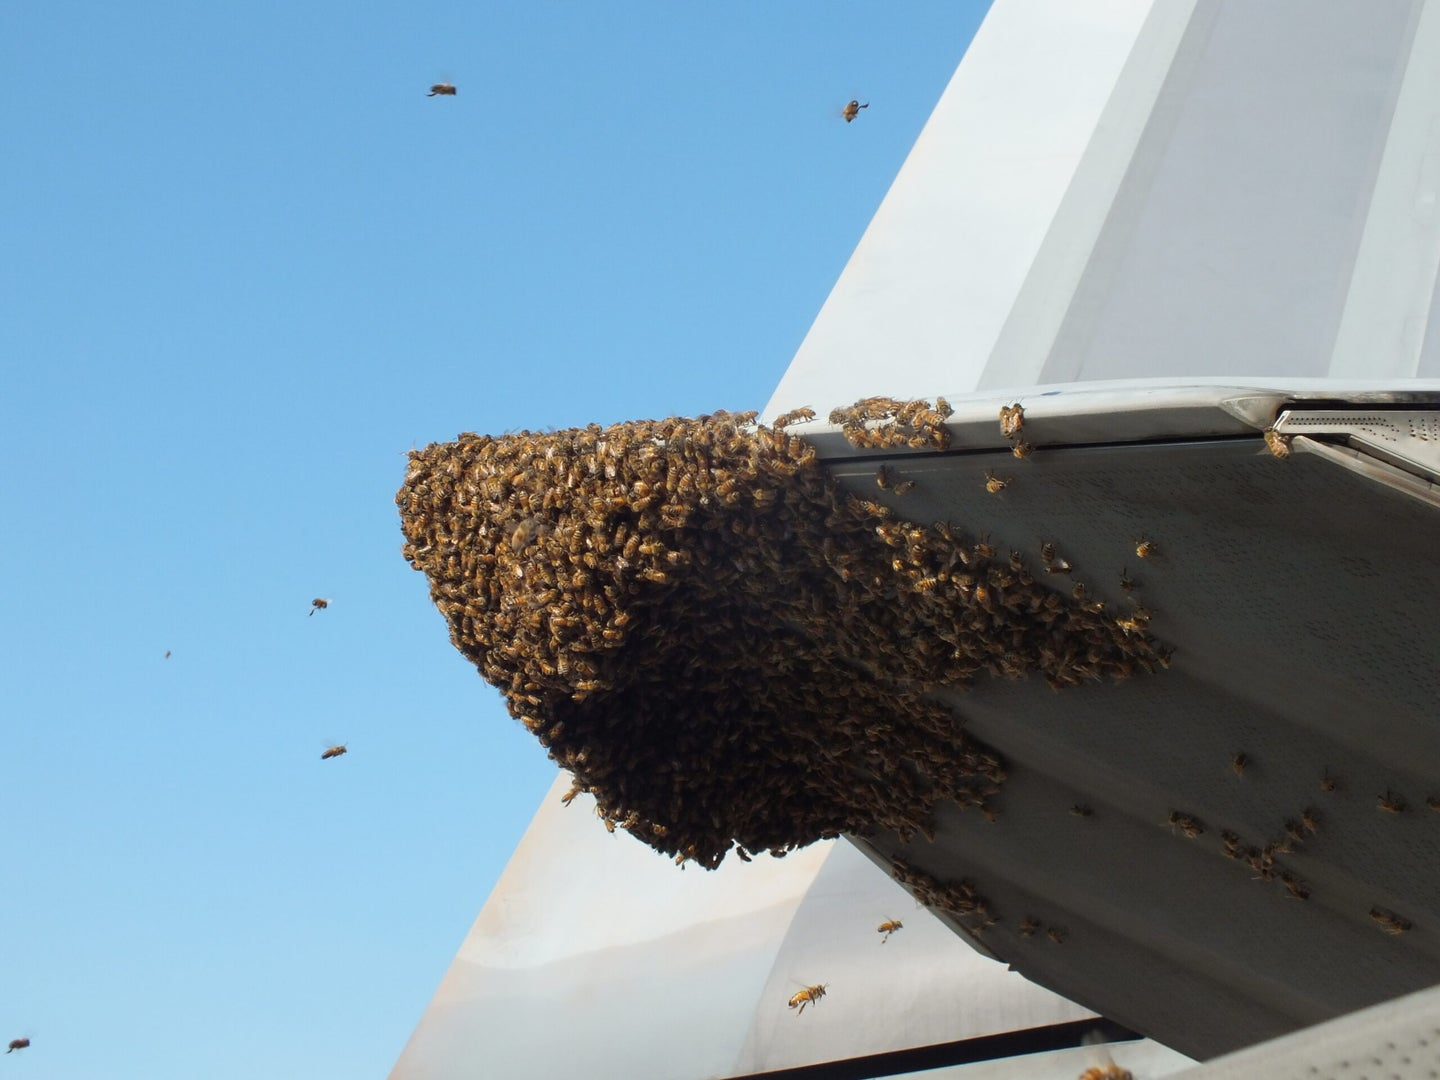 Bees On An F-22